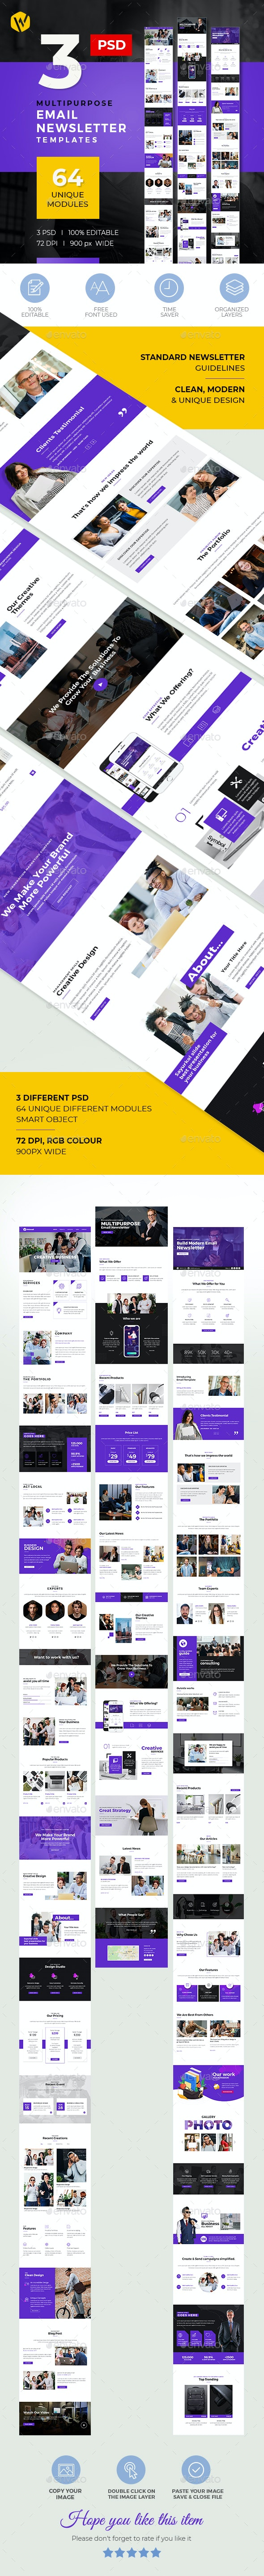 3 E-Newsletter Email PSD Templates - E-newsletters Web Elements